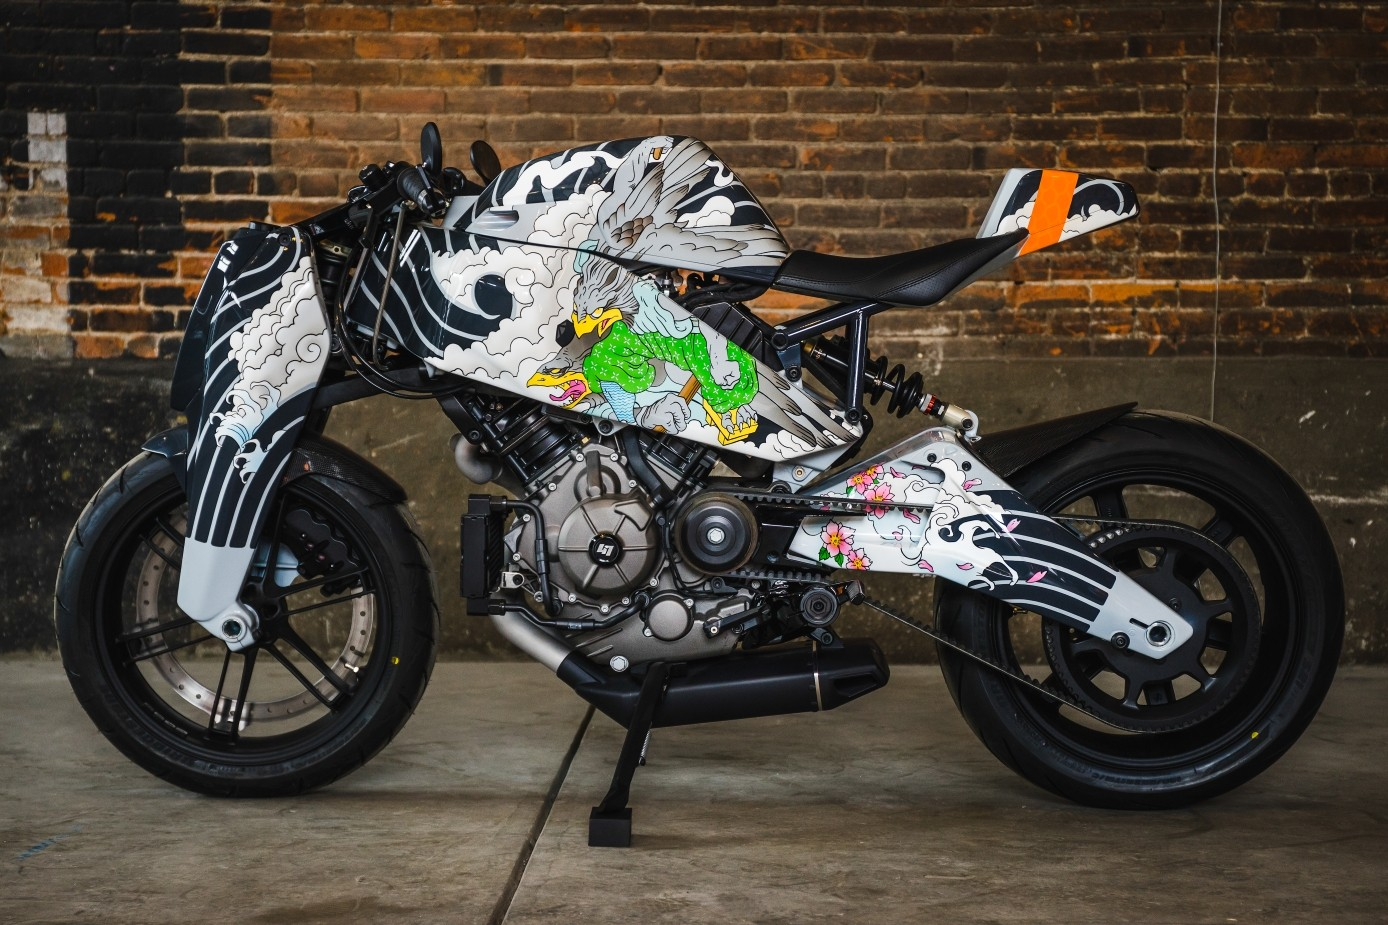 Four More Buell 1125r Ronin Bikes Up For Grabs Autoevolution